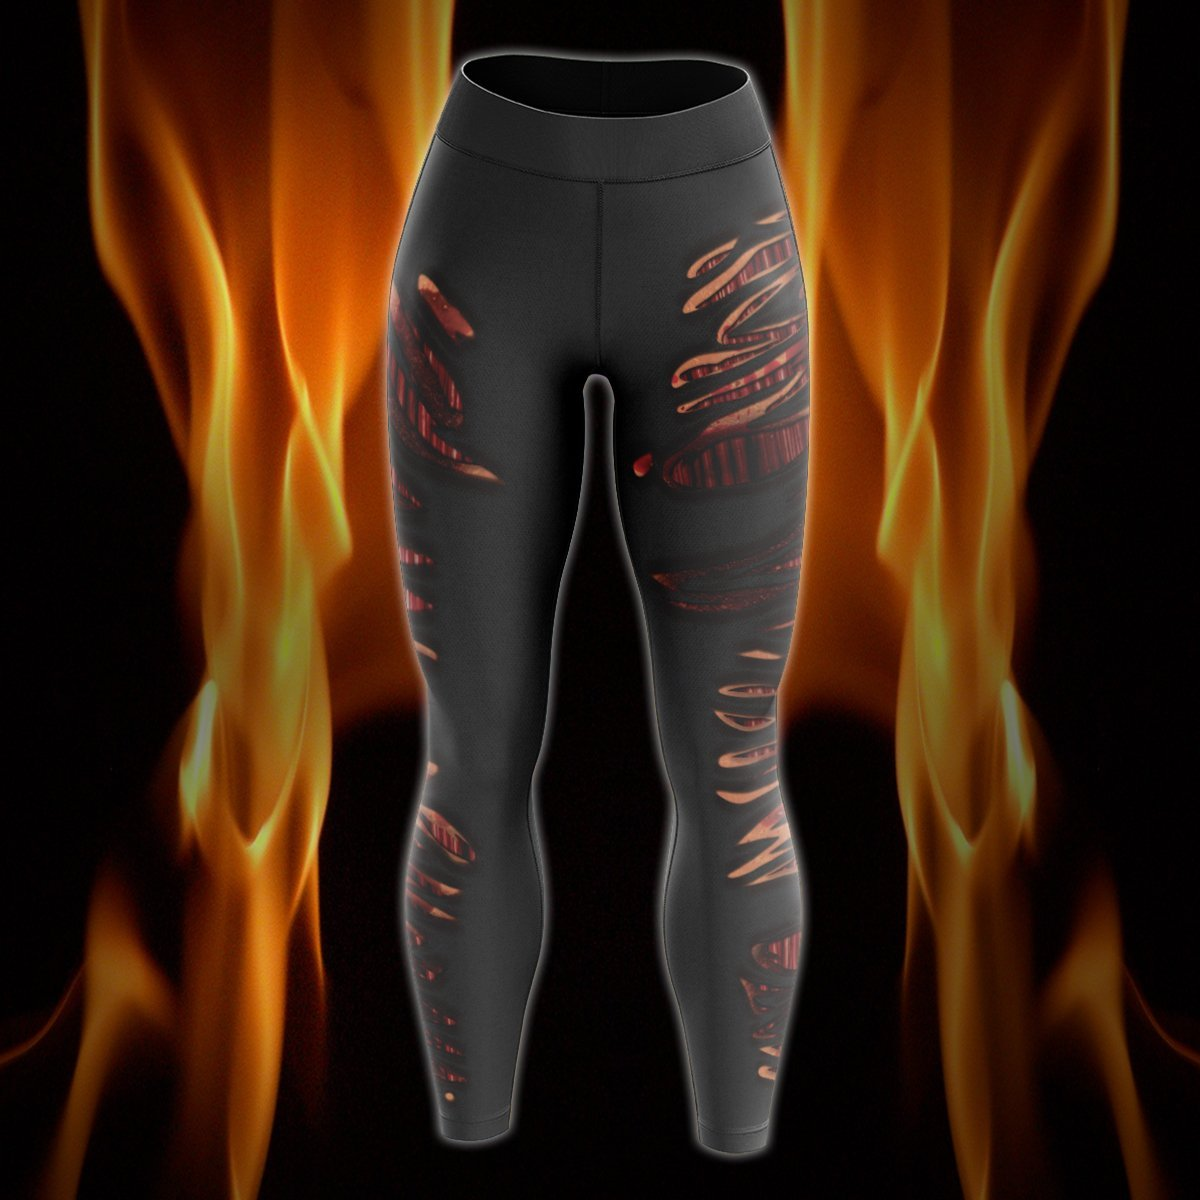 Burnt Hot Unisex Tights S Leggings